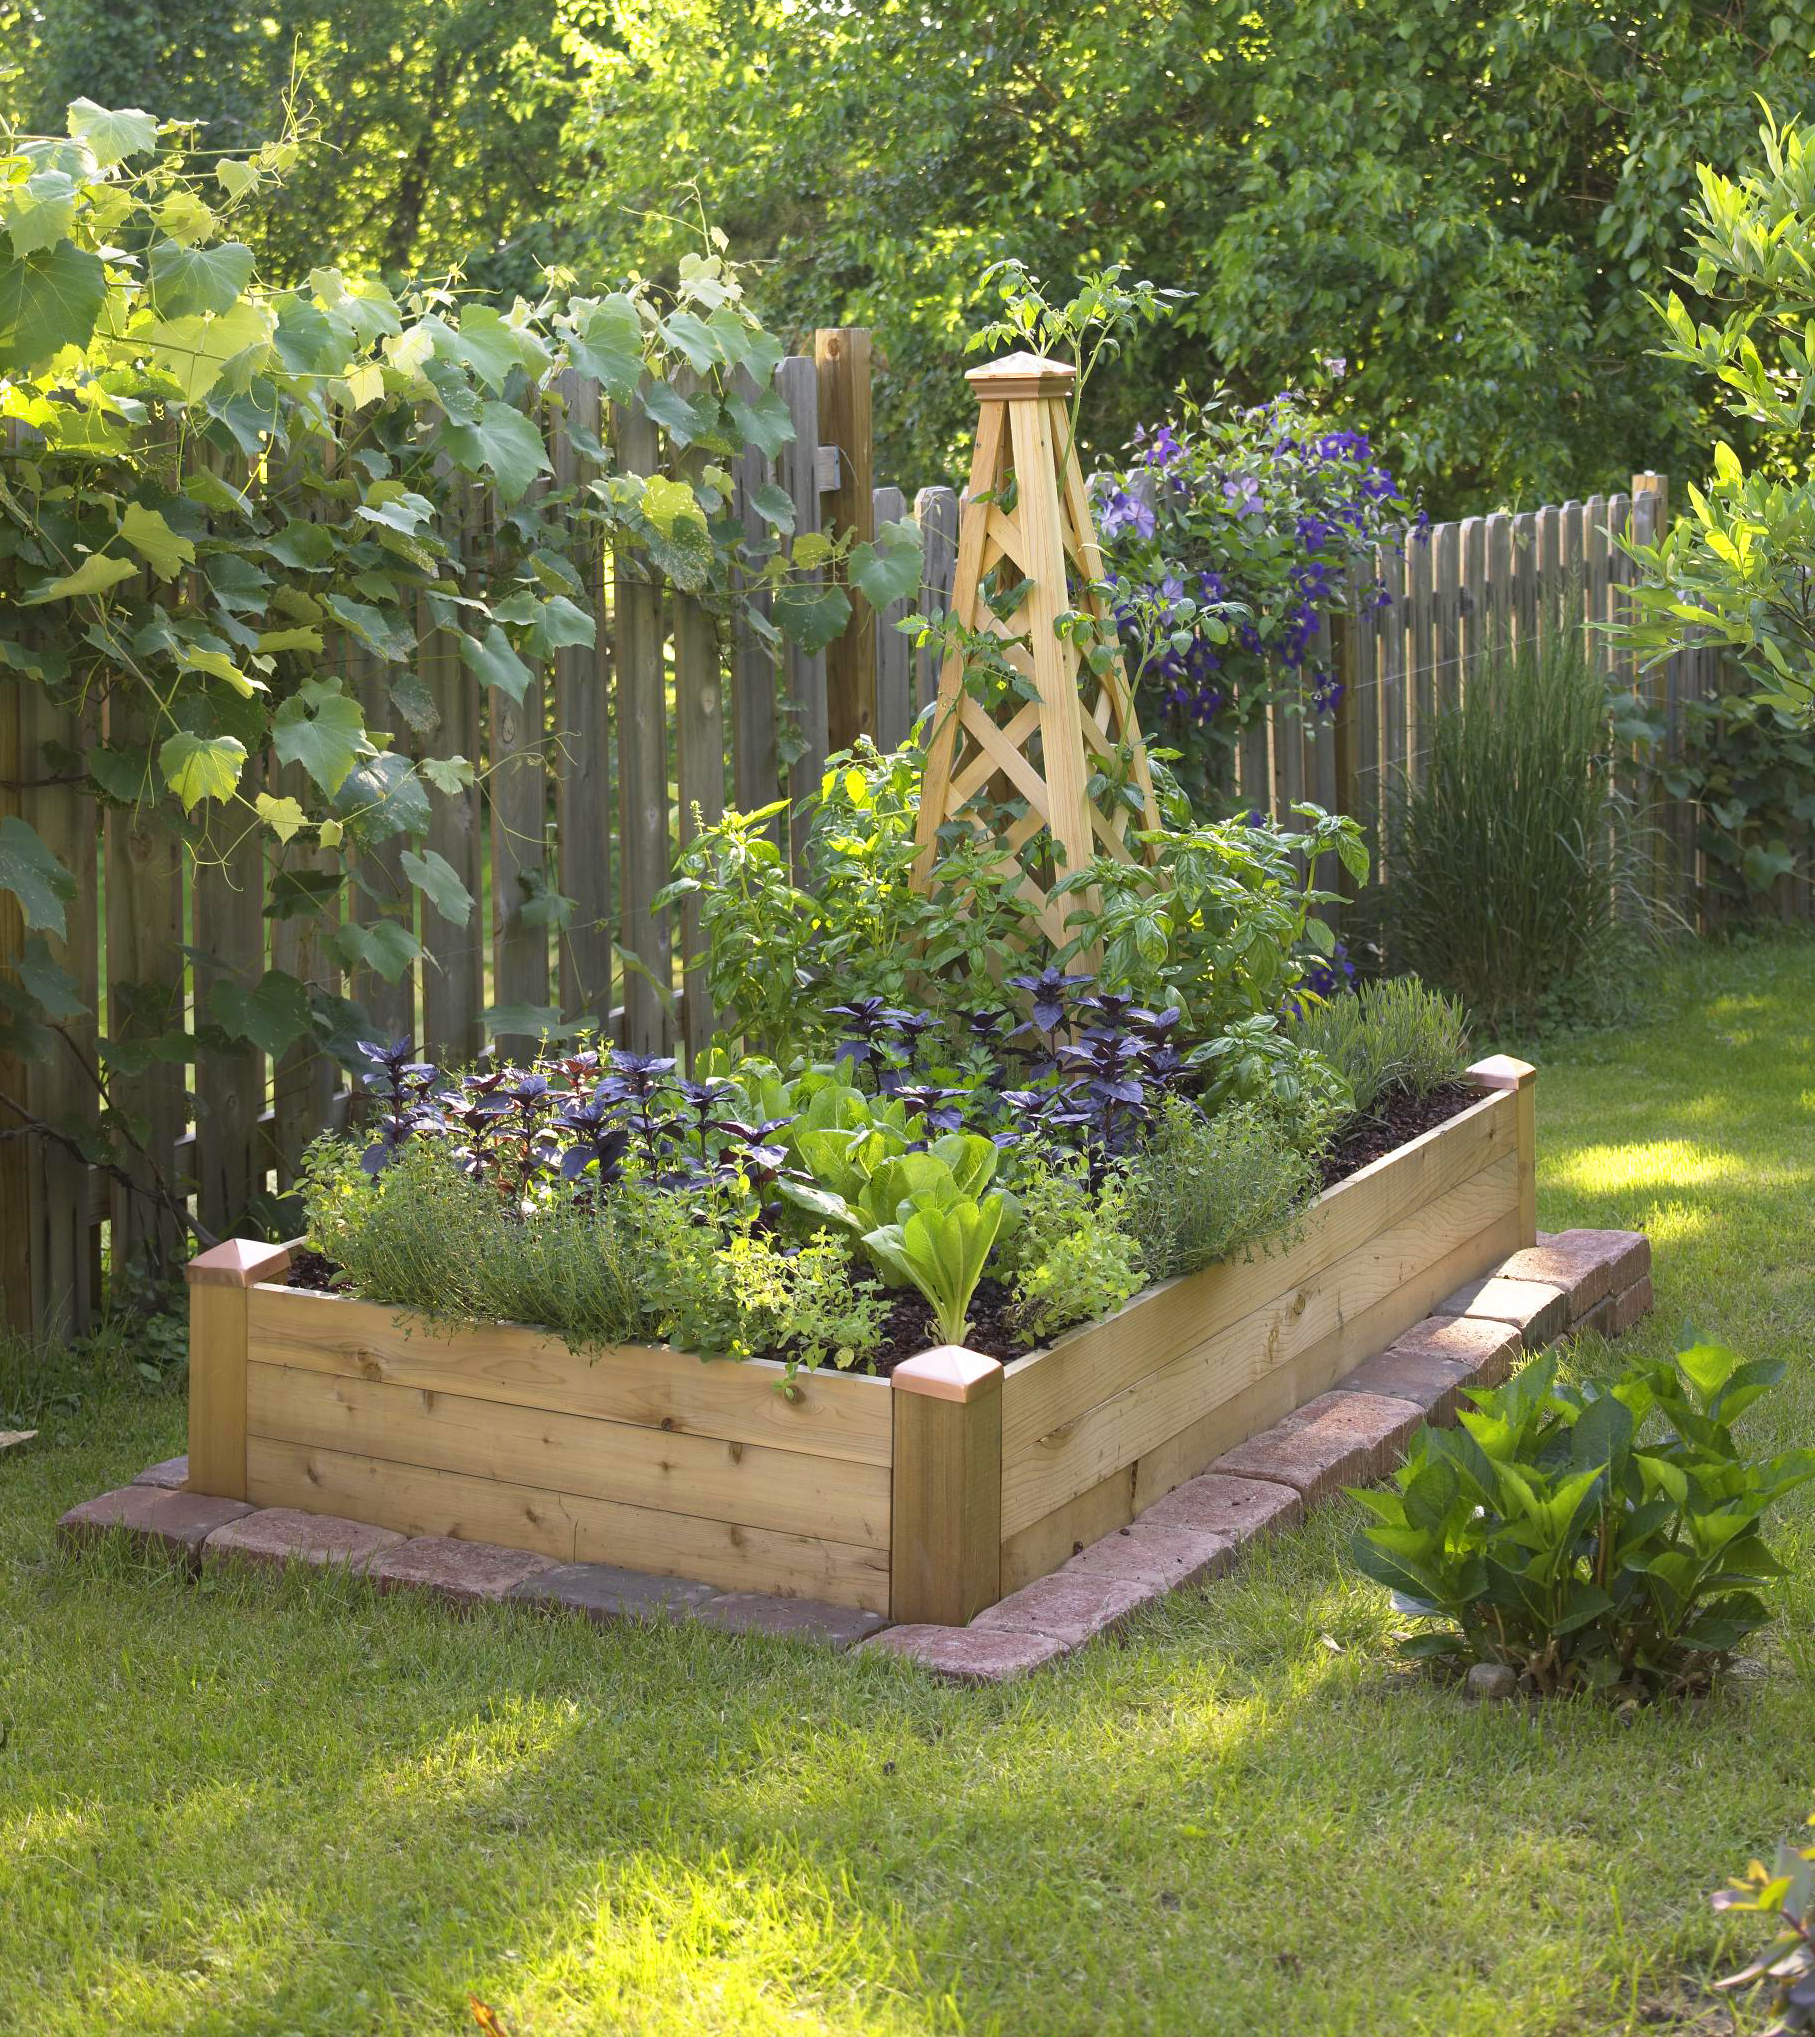 Small Space Landscaping Ideas: Small-Space Gardening: Build A Tiny Raised Bed